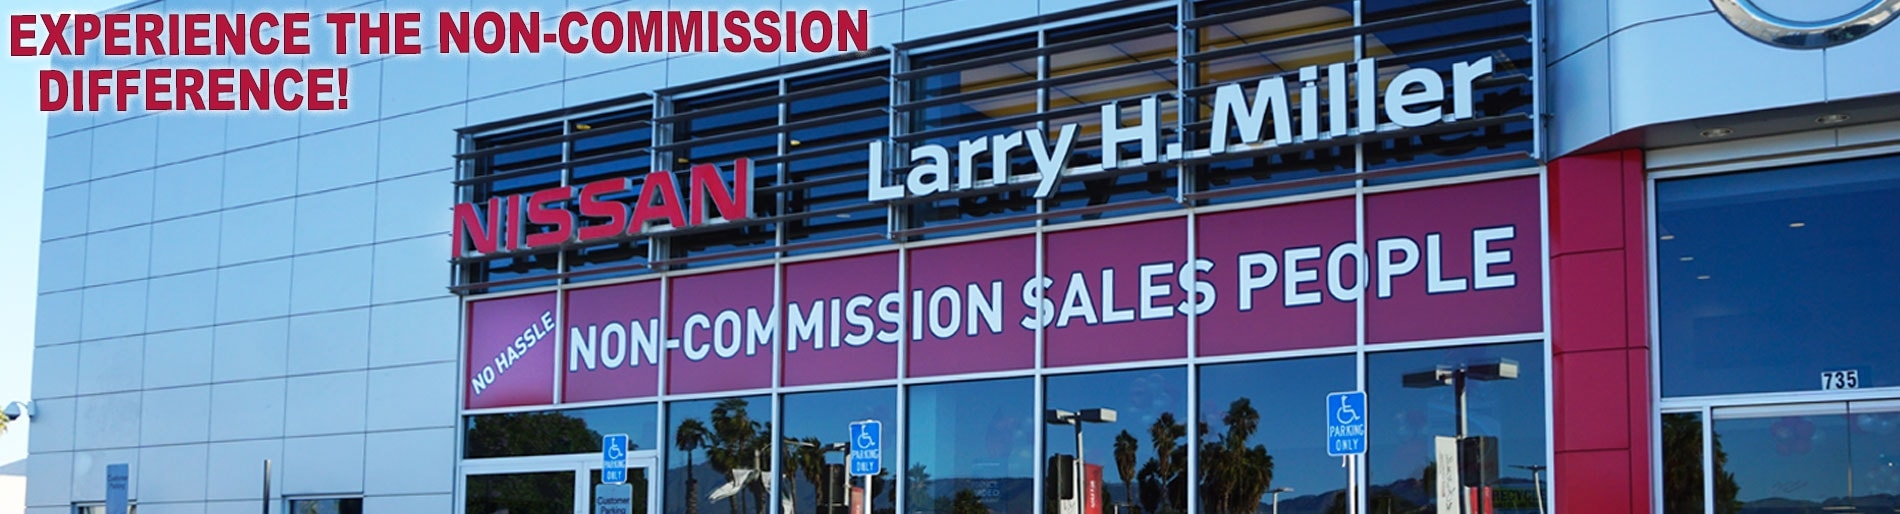 Larry H Miller Nissan San Bernardino Non-Commission Difference